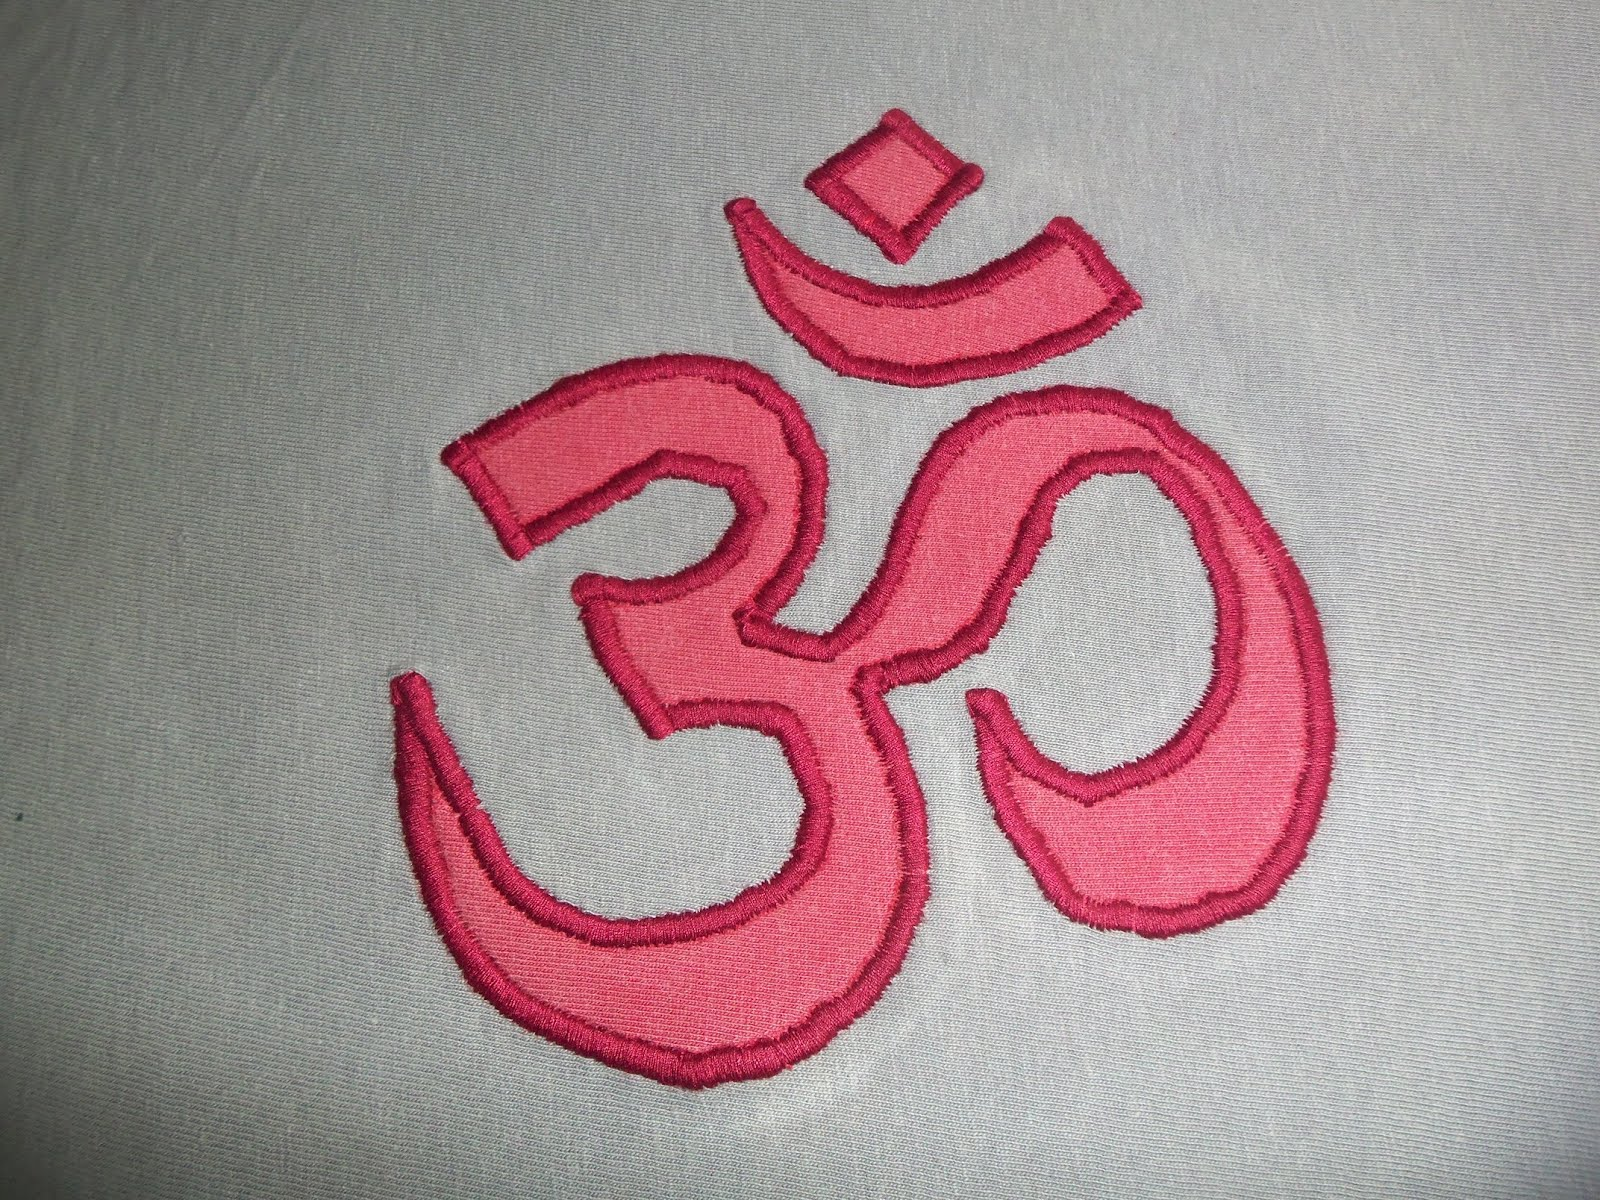 buddhist symbol for love pictures to pin on pinterest